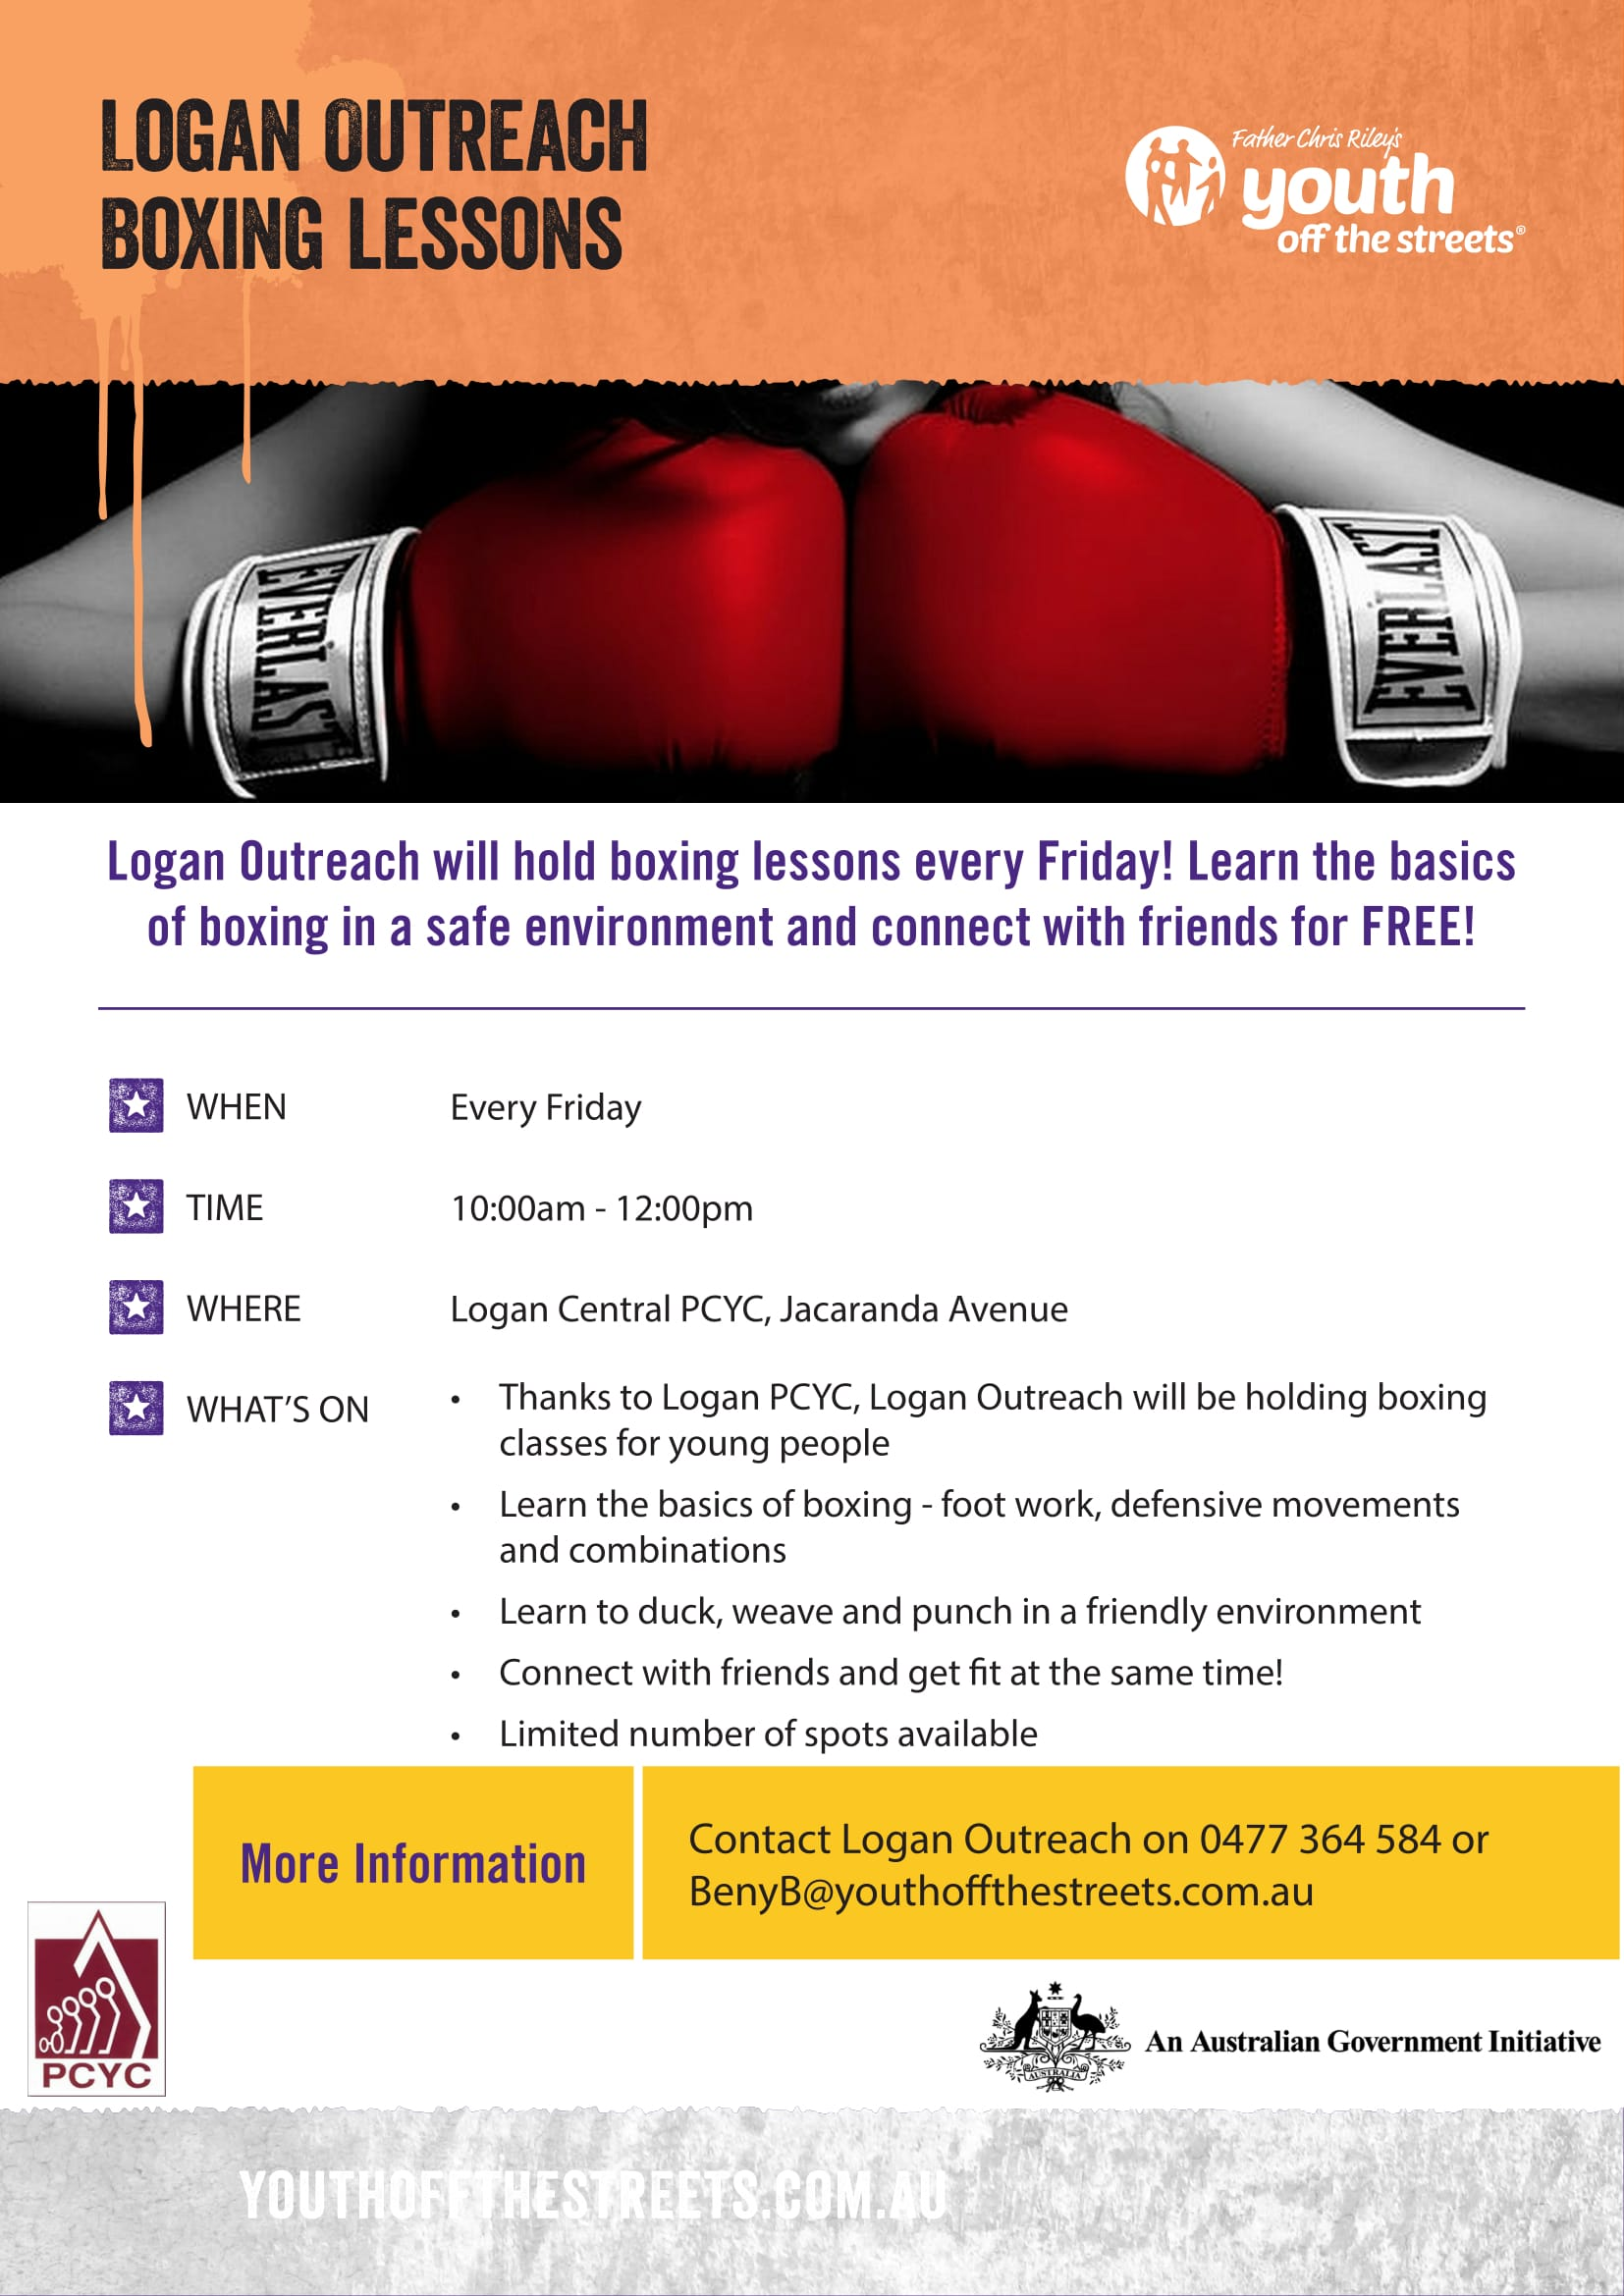 Boxing Brisbane City Logan Outreach Boxing Lessons Disability Support